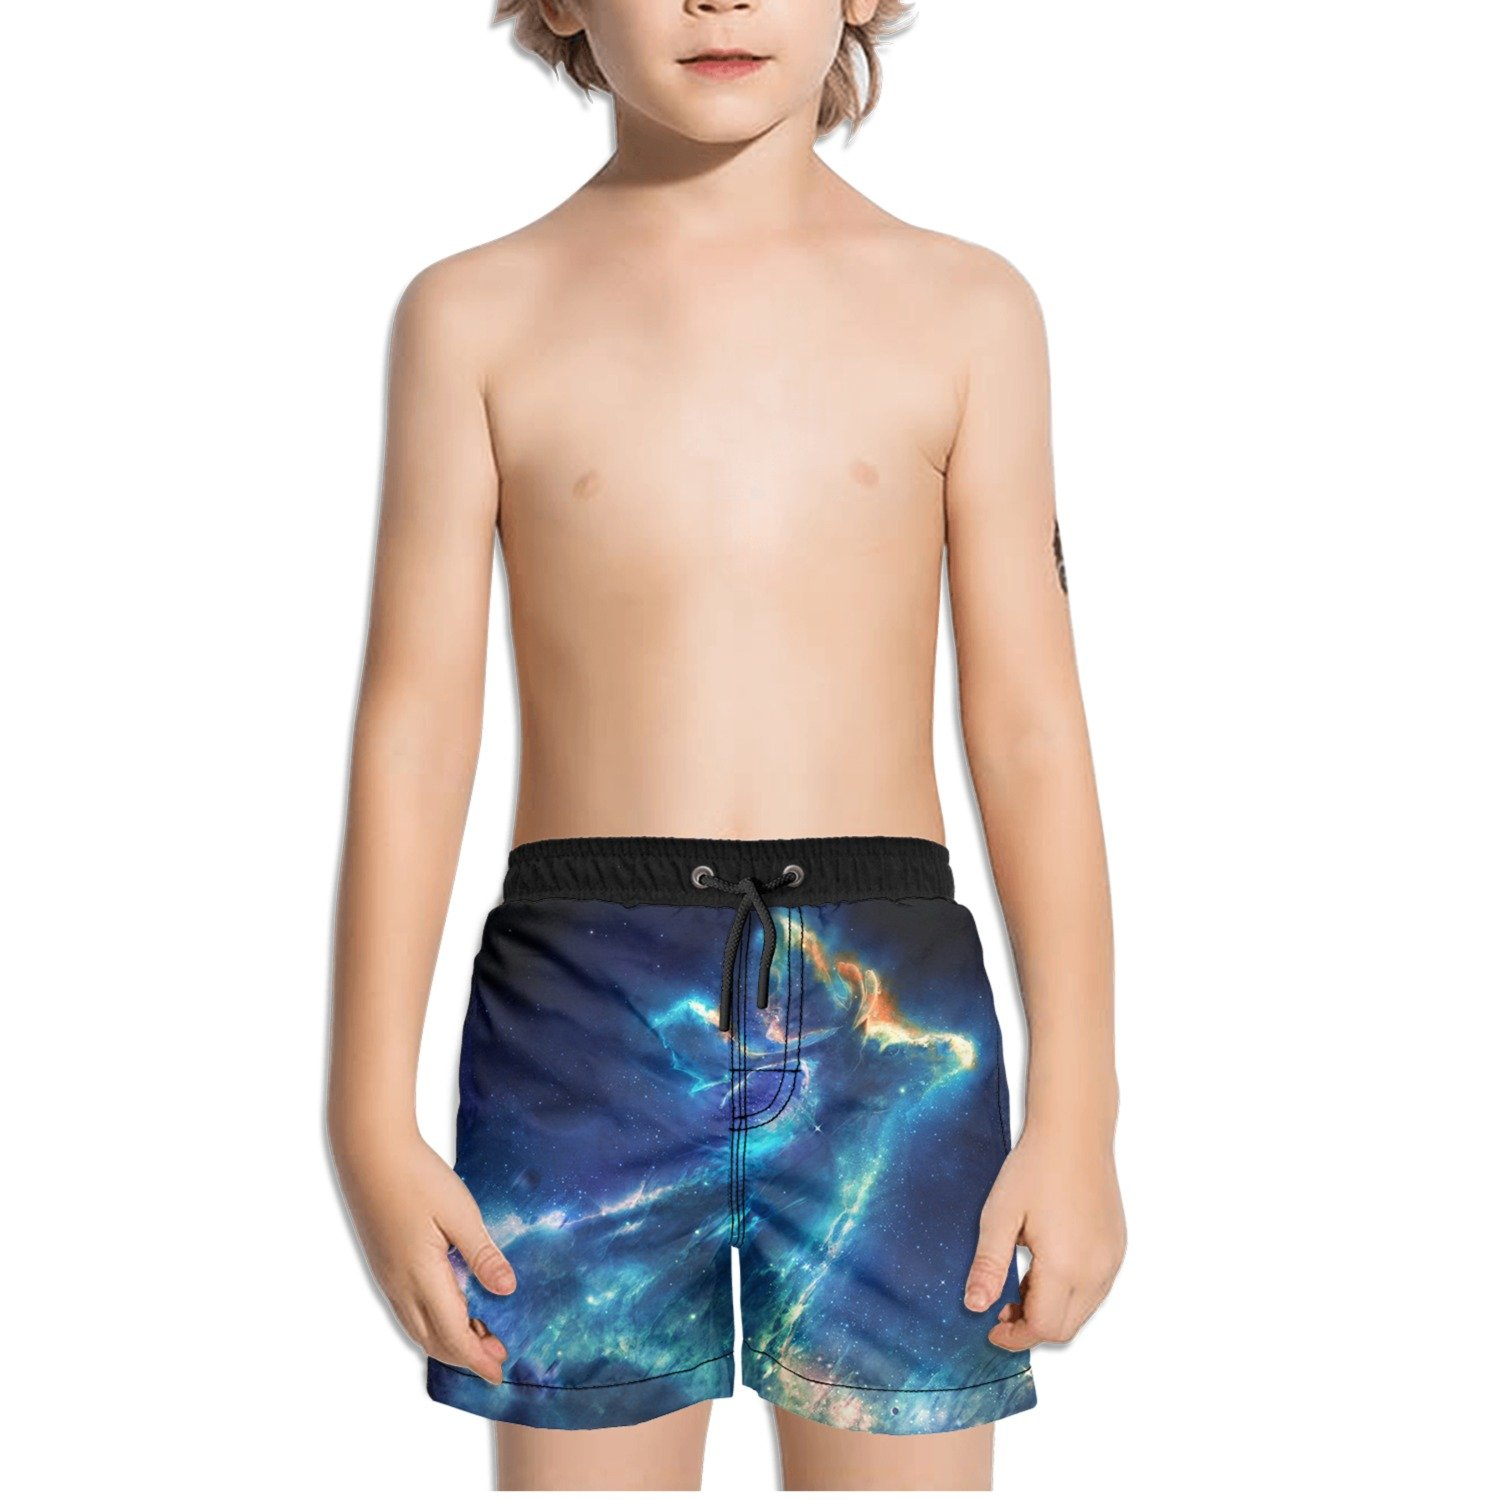 FullBo Galaxy Fantasy Deer Elk Little Boys Short Swim Trunks Quick Dry Beach Shorts